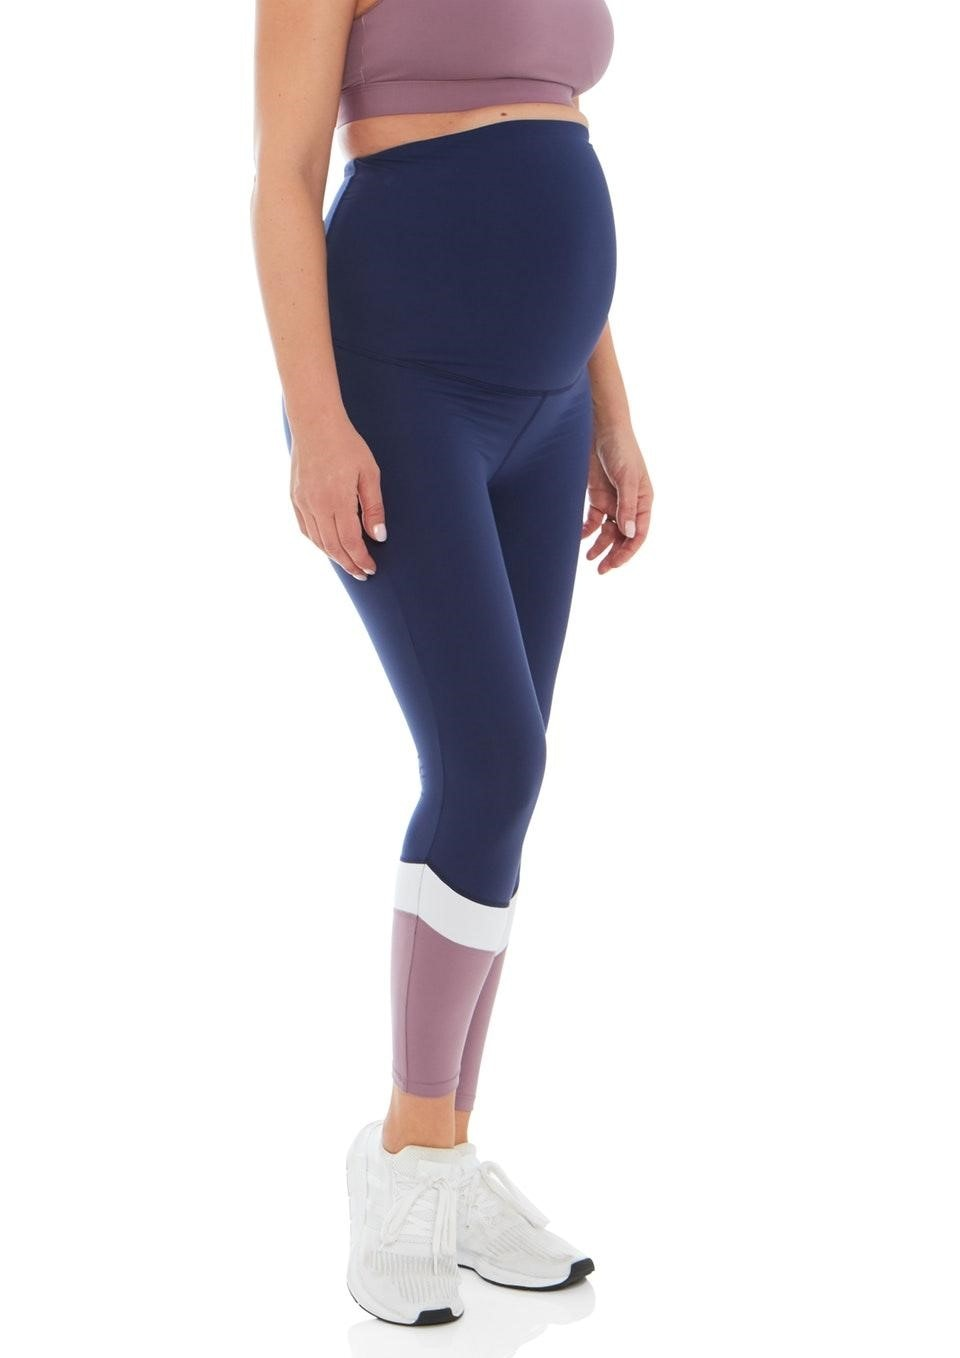 de05910c6f5ae Workout tights with pockets | Rockwear Activewear